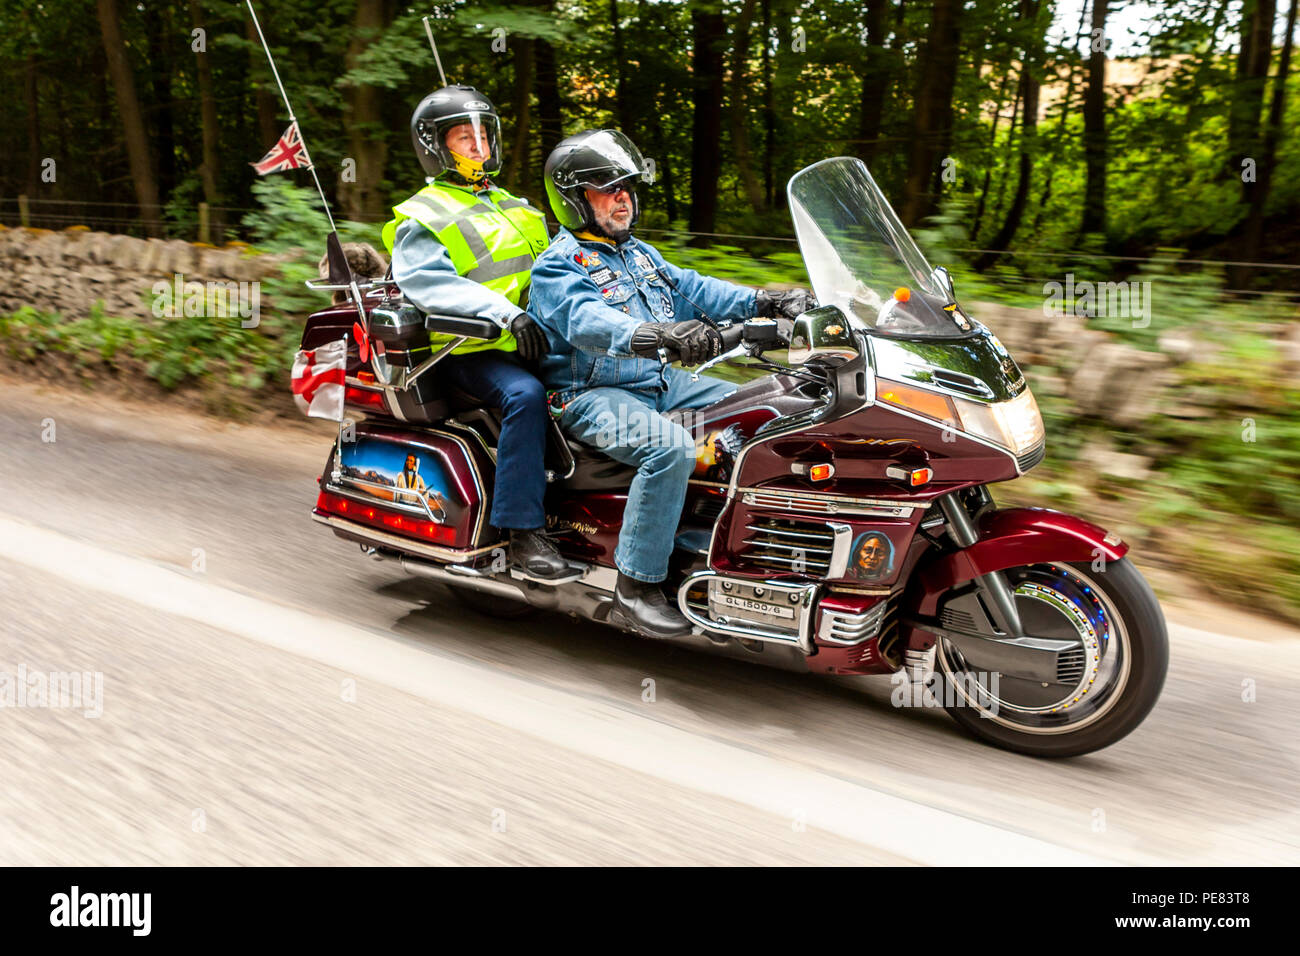 Honda Goldwing Owners Take To The Road In The Derbyshire Peak